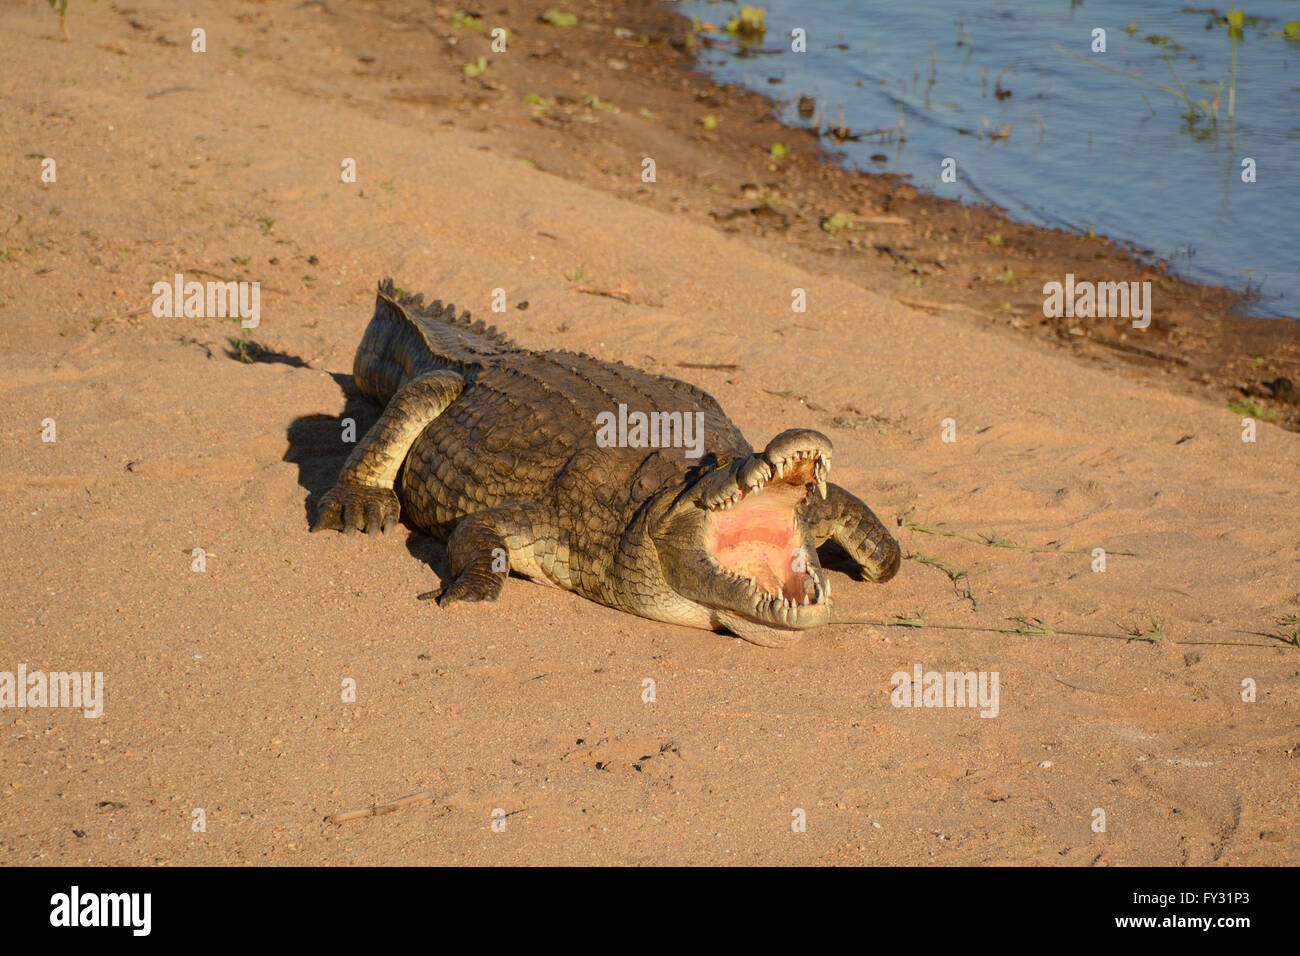 Large Nile Crocodile basking in the sunshine with mouth agape to facilitate cooling to control his body  temperature - Stock Image